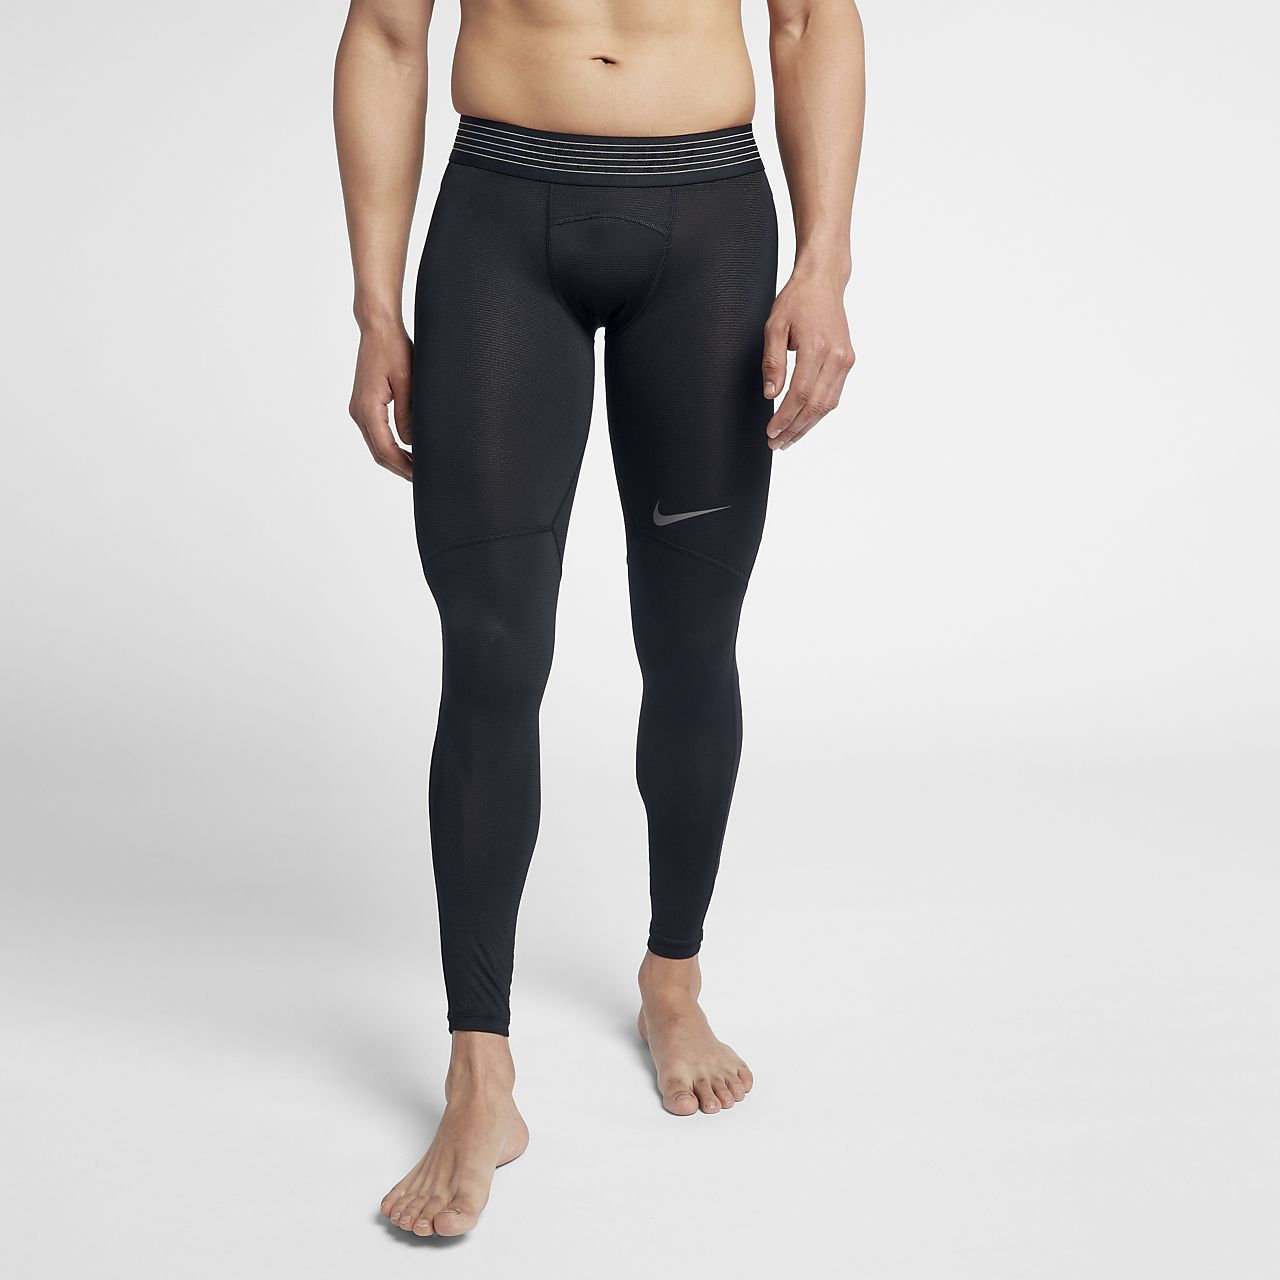 5bc43281af7f Nike Pro HyperCool Men s Training Tights. Nike.com GB